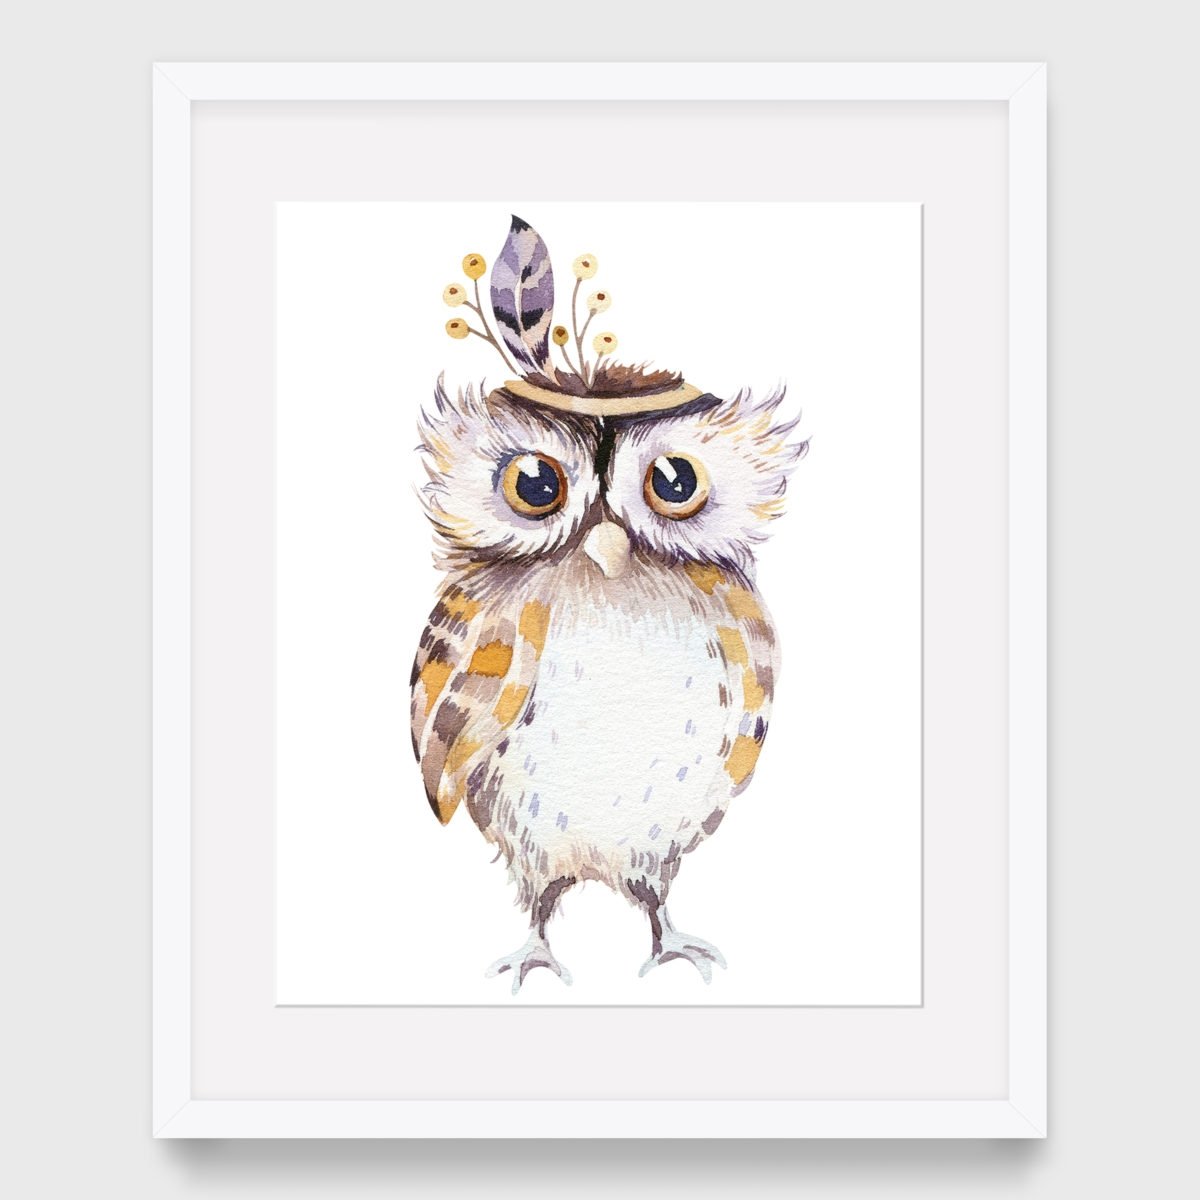 44. Owl without Floral